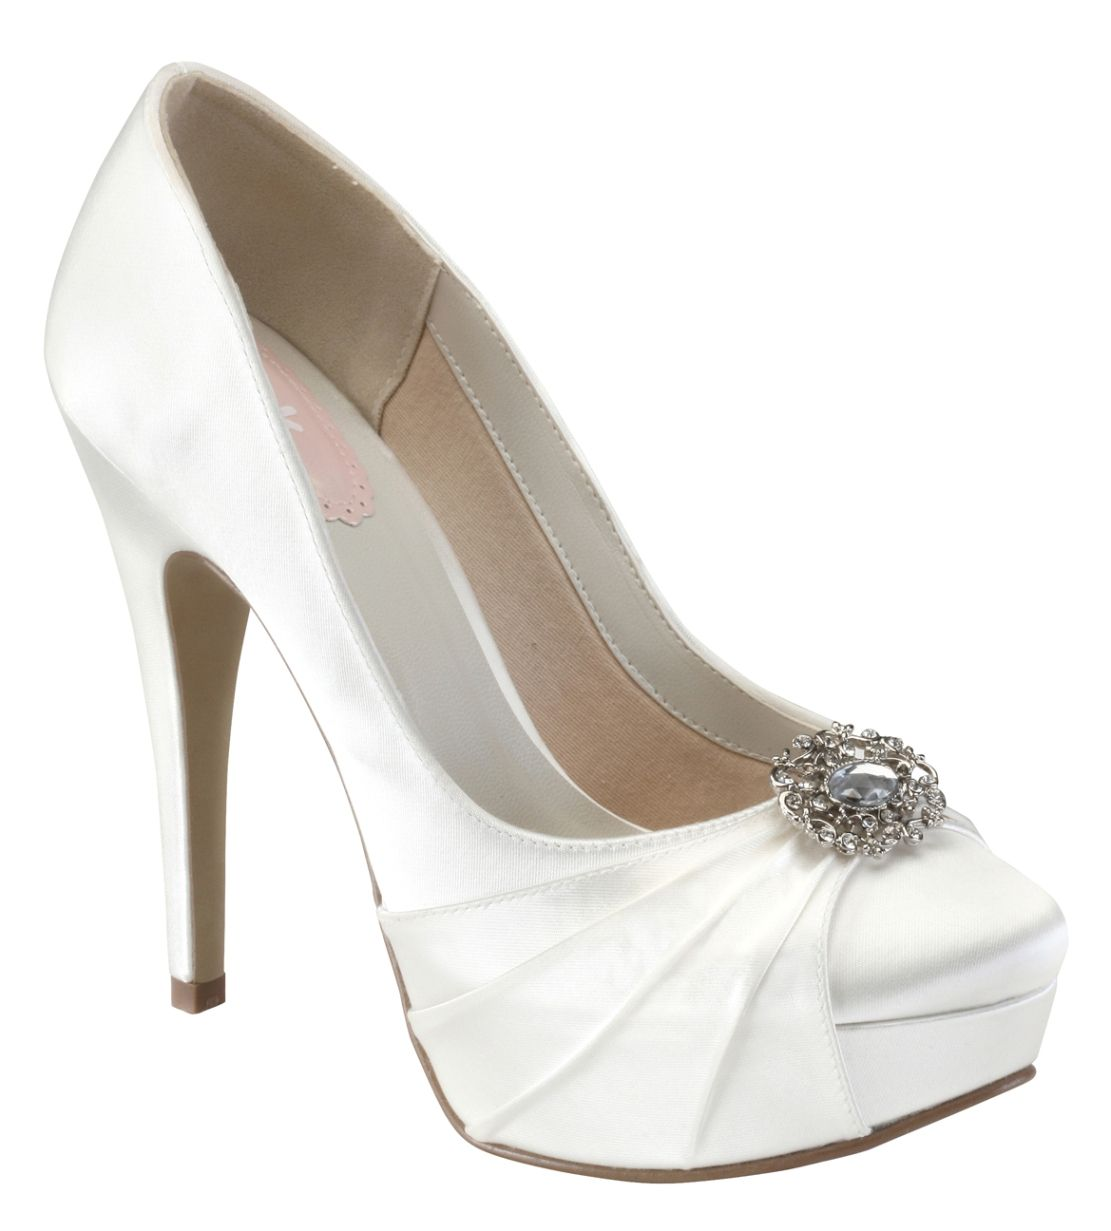 Paradox Pink Caramel Dyeable Wedding Shoes From Elegant Steps 79 95 Dyeable Wedding Shoes Satin Shoes Bridal Shoes